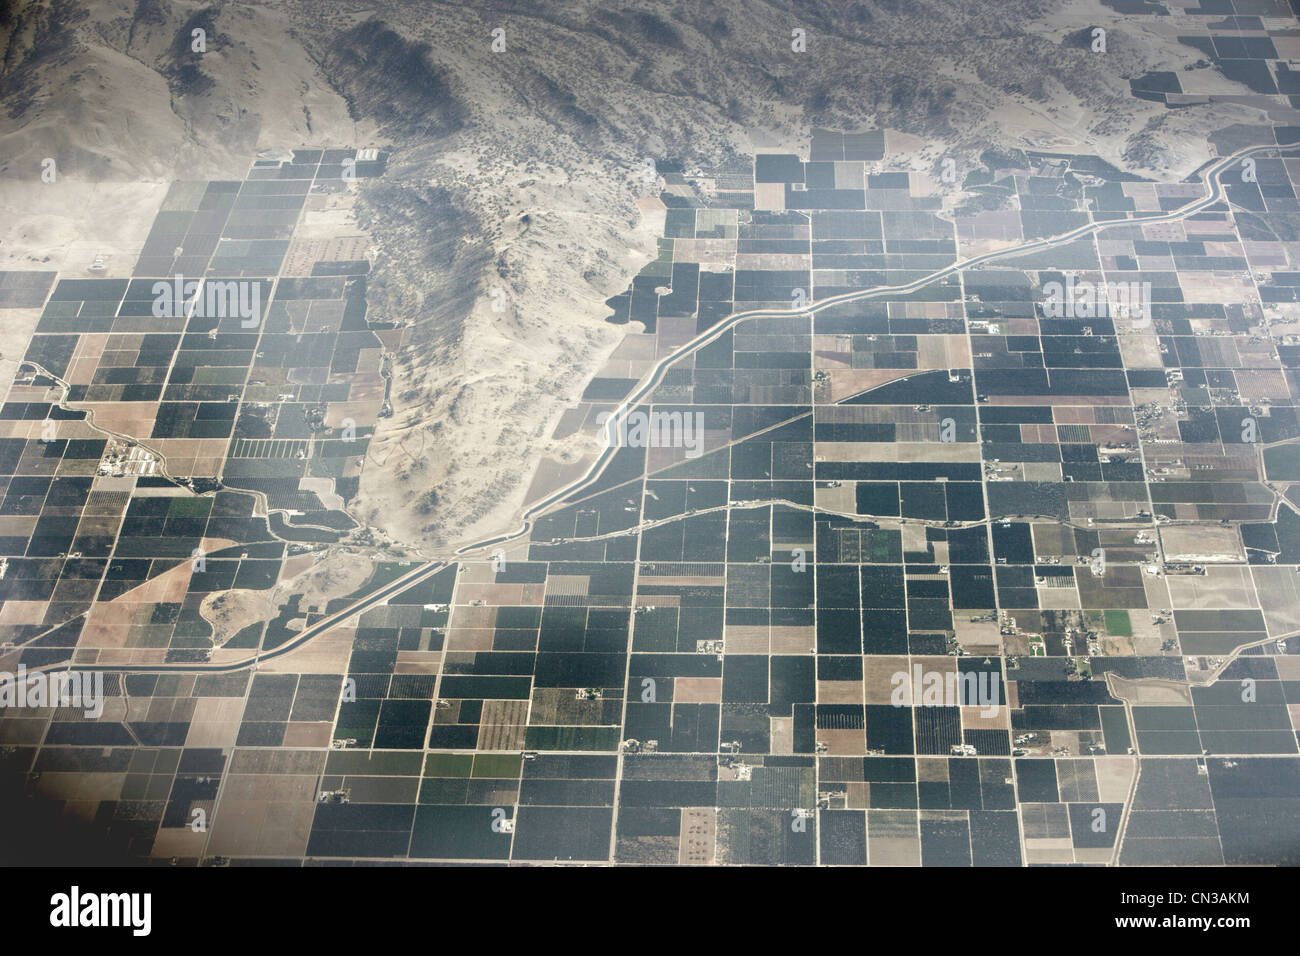 Aerial view of Central Valley, California, USA - Stock Image